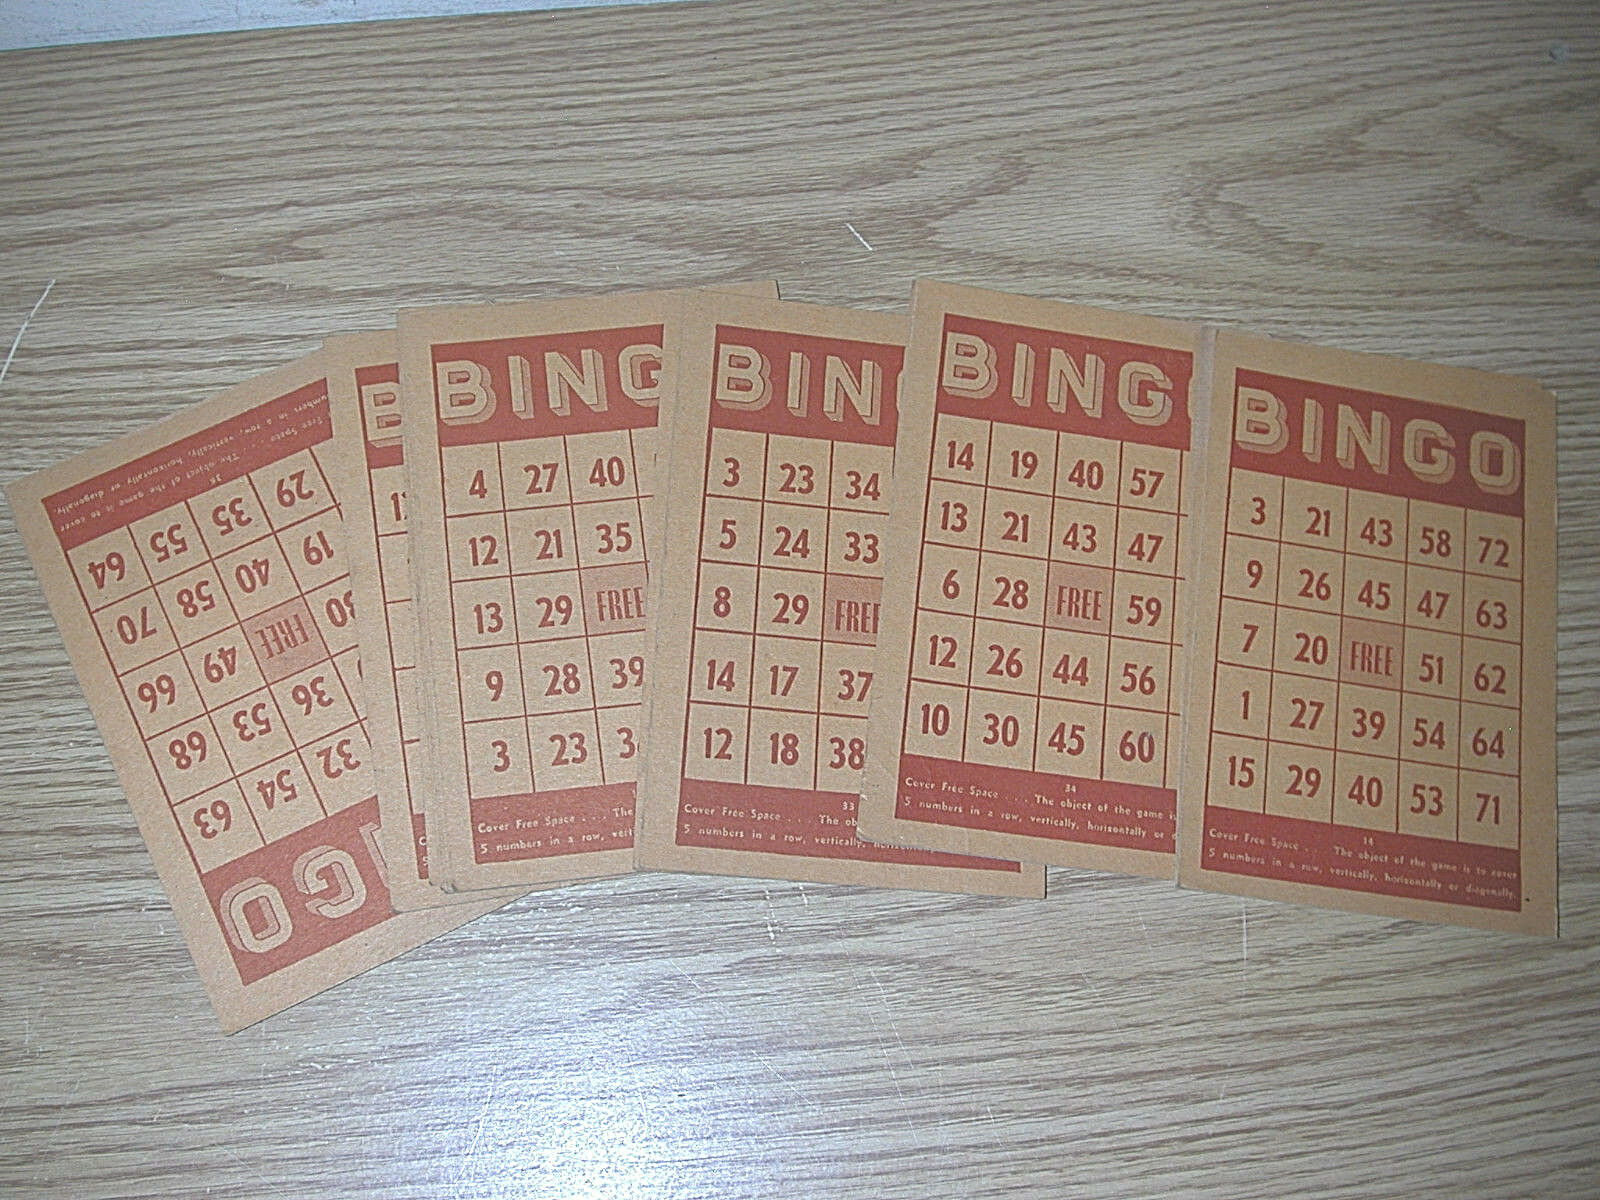 VINTAGE BUILT-RITE BINGO BINGO BINGO GAME SET NUMBER 8 W  SPINNER SELECTOR, MARKERS MISSING f8470f